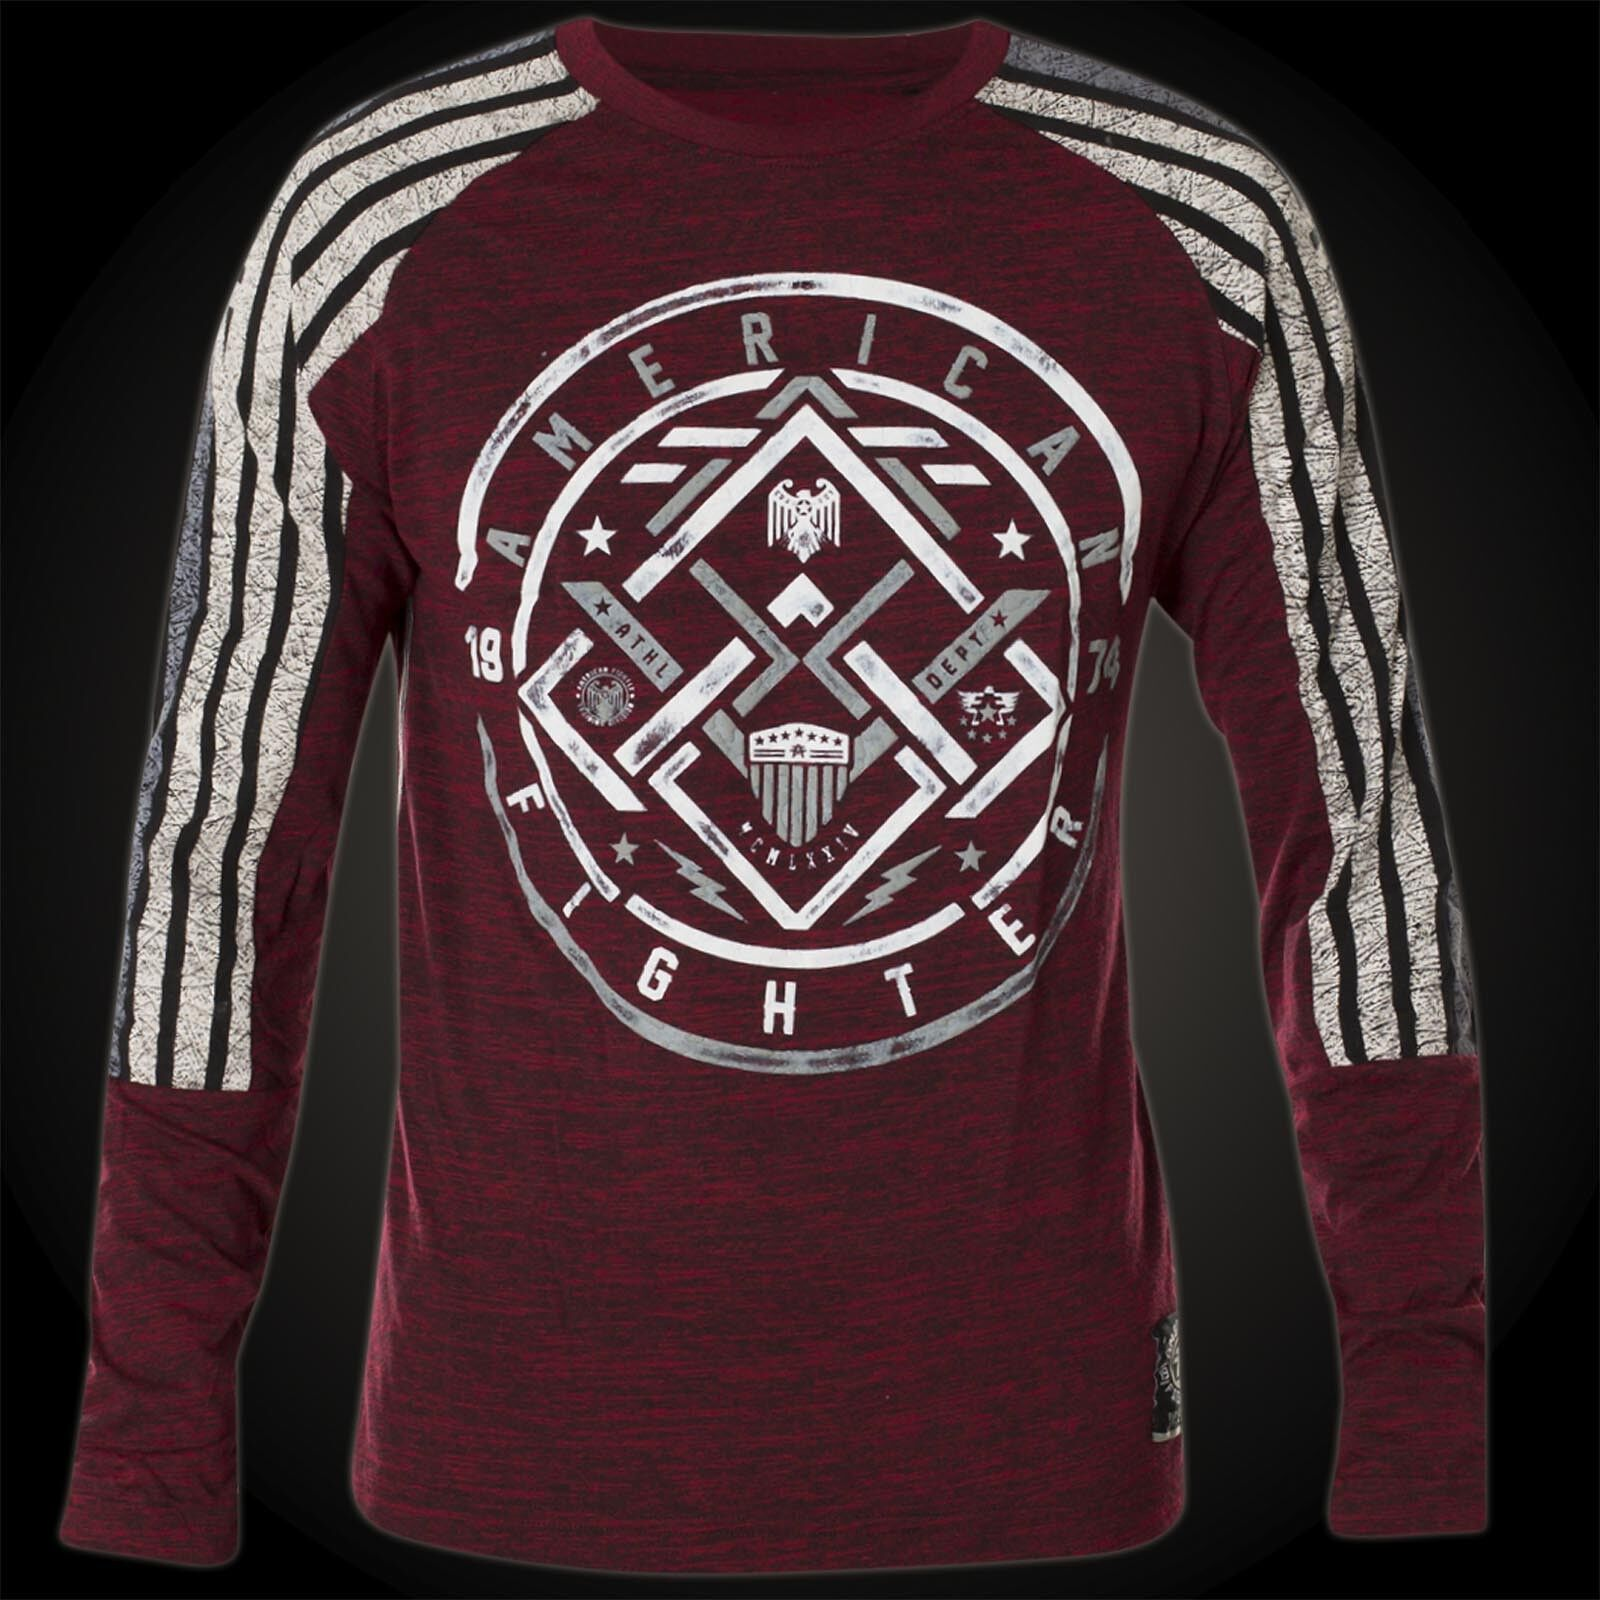 439b2f64d83 Details about American Fighter by Affliction Thermal Gilcrest Wine red